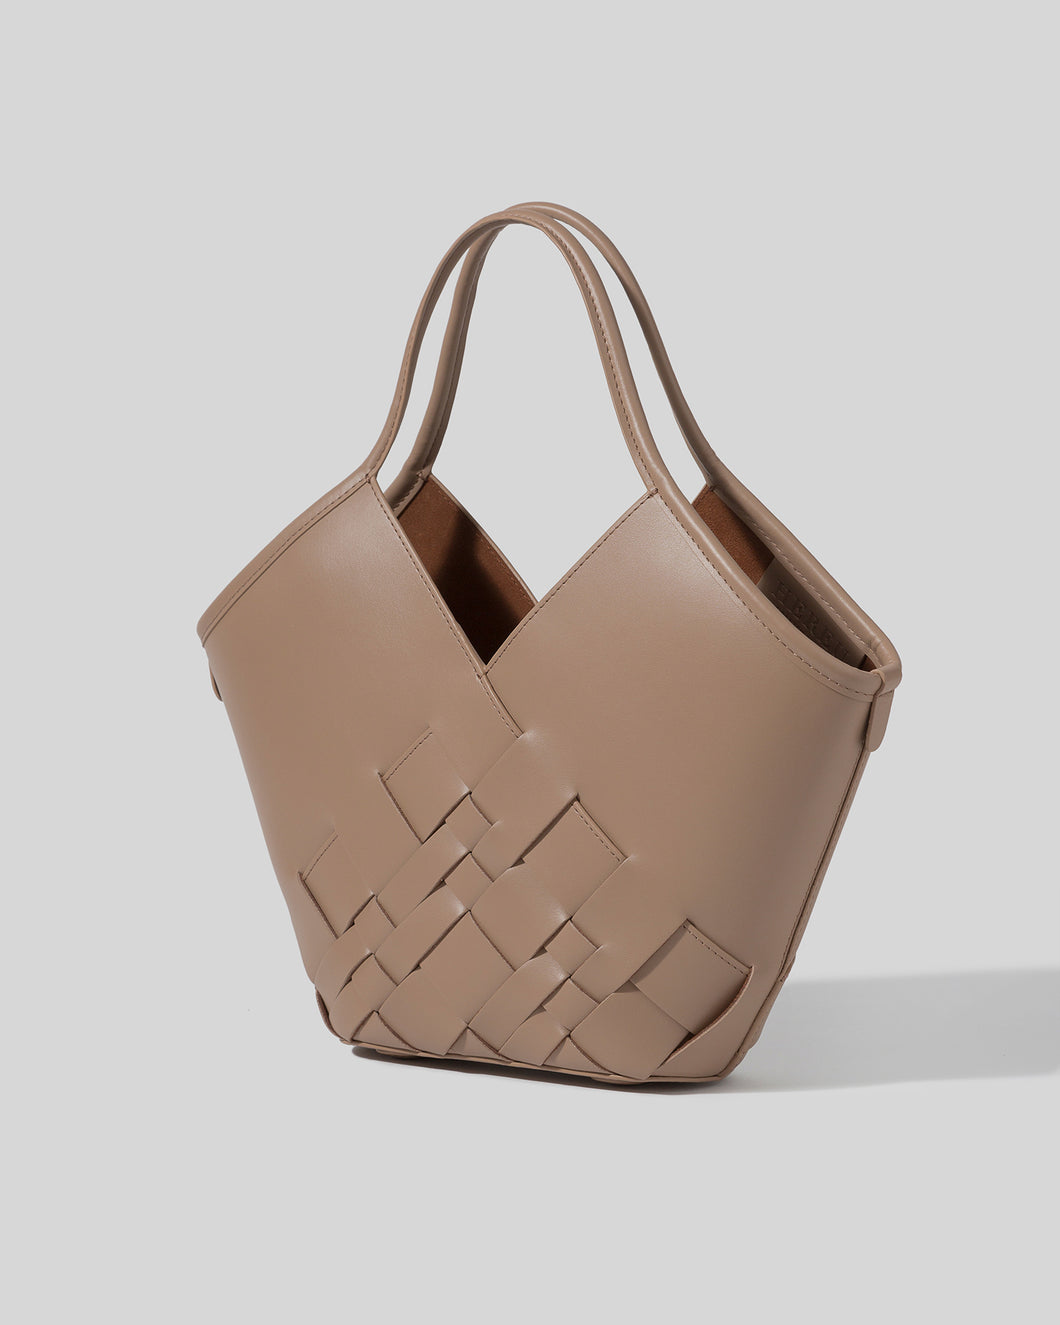 COLOMA S - Interwoven Leather Tote